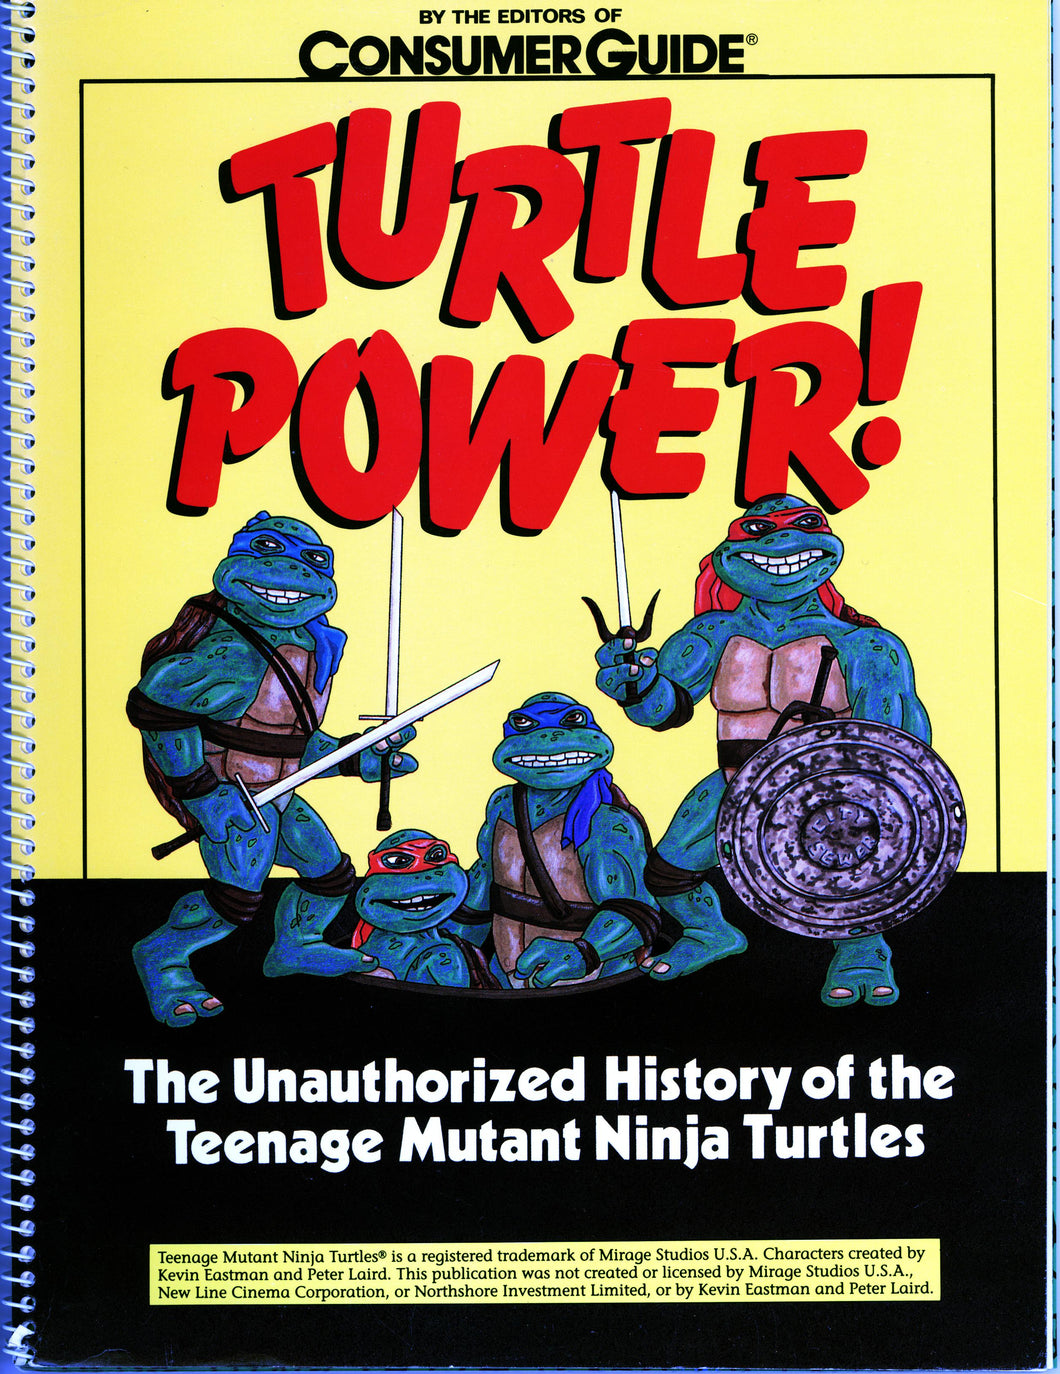 TURTLE POWER HISTORY TEENAGE MUTANT NINJA TURTLES- VINTAGE 1990 TMNT